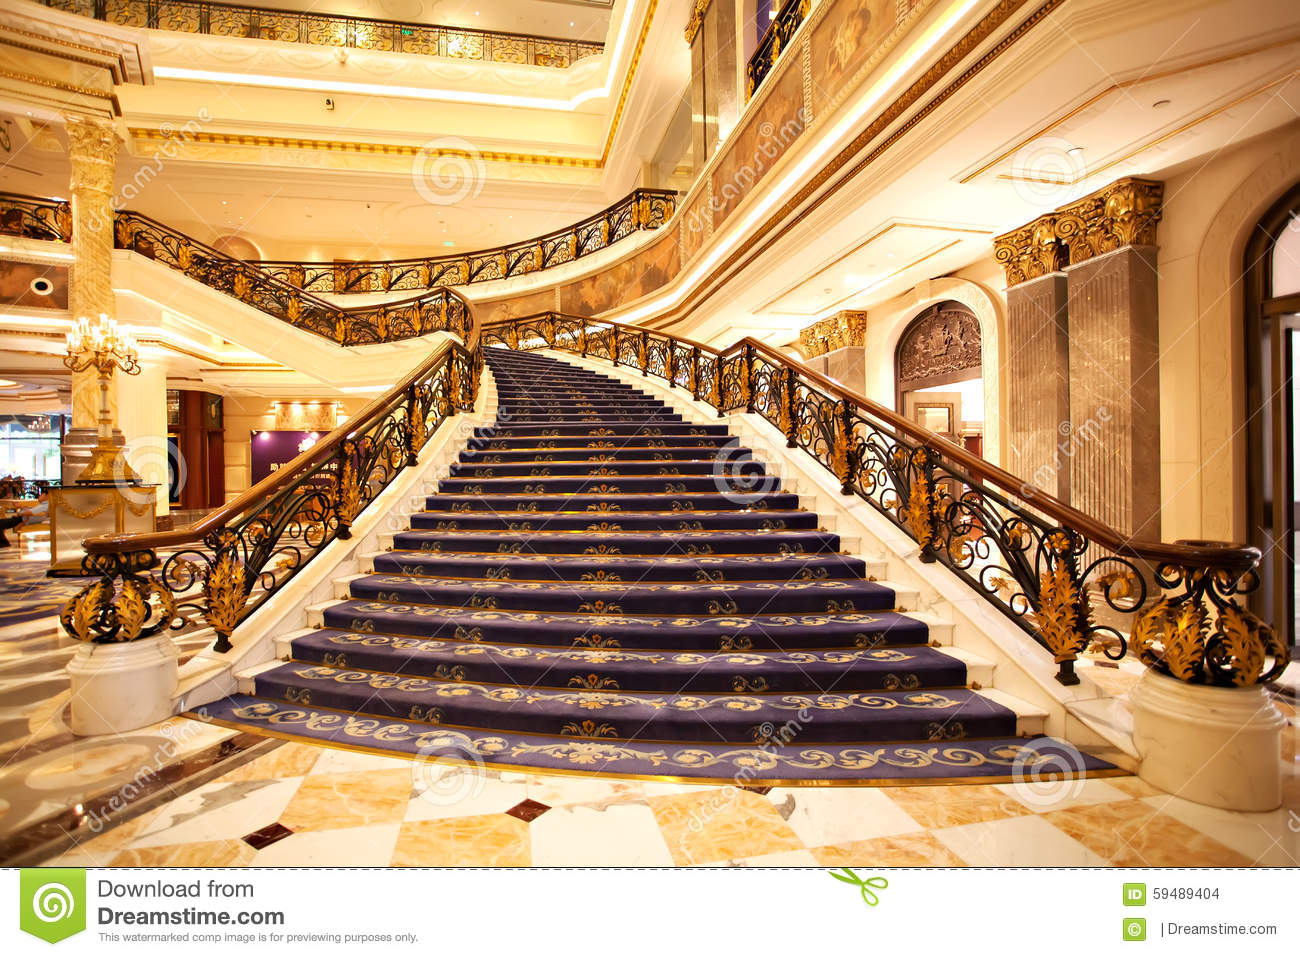 The Hotel Lobby Stairs Stock Photo Image Of Modern